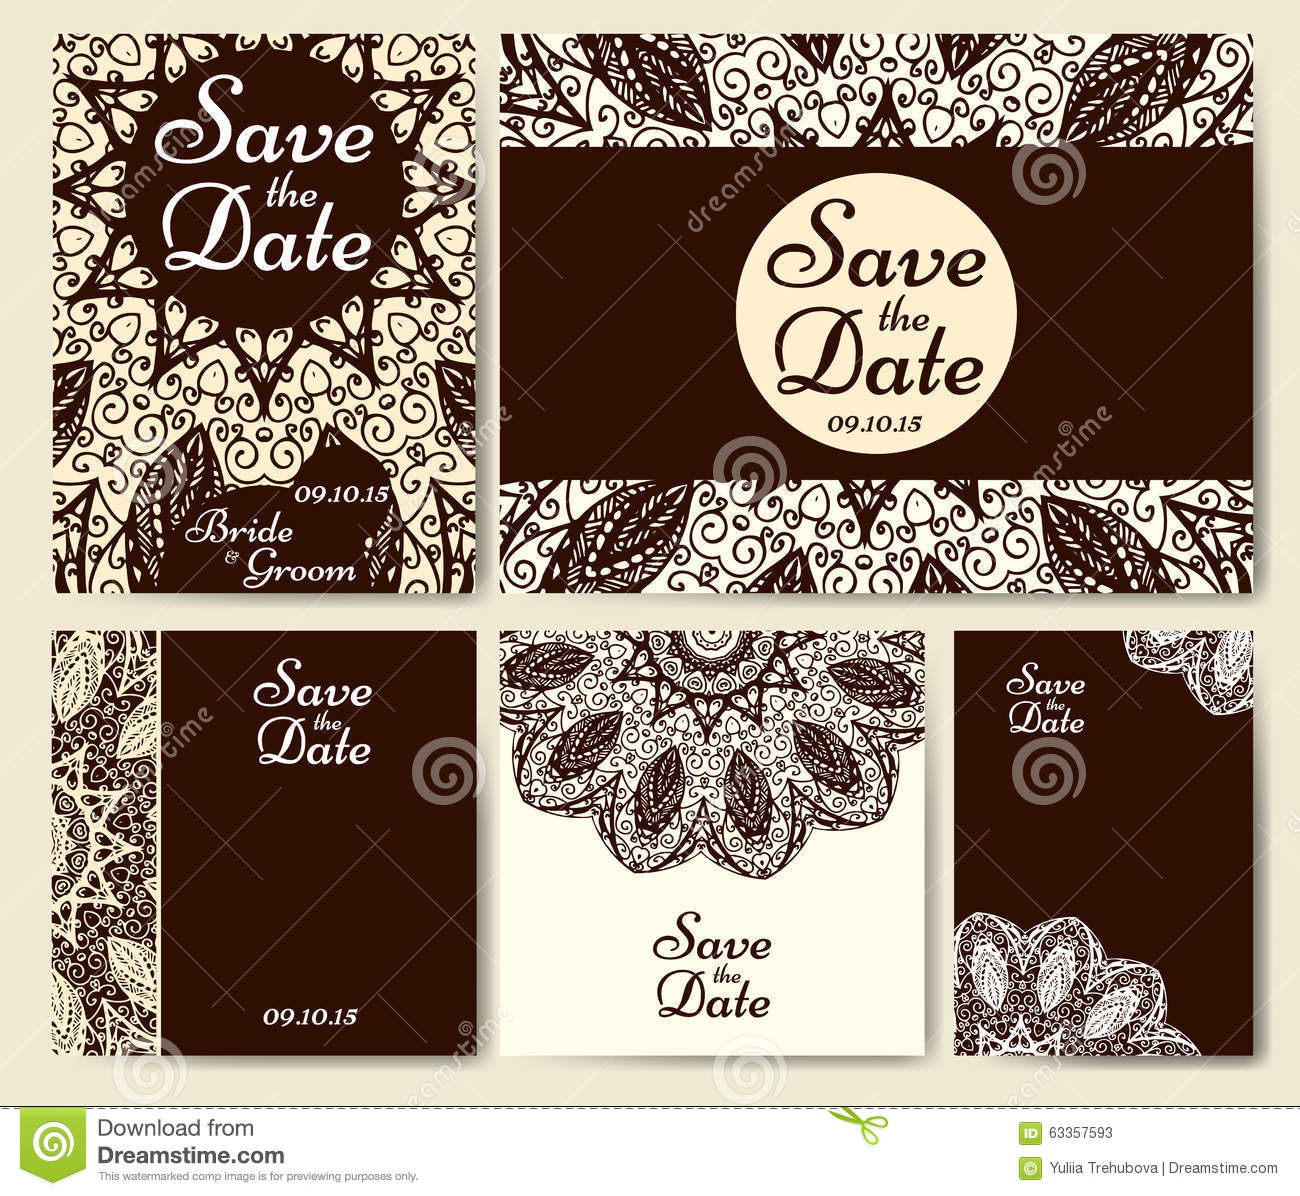 Wedding card collection with mandala template of invitation card wedding card collection with mandala template of invitation card decorative greeting invitaion design with vintage islam arabic indian matifs stopboris Images